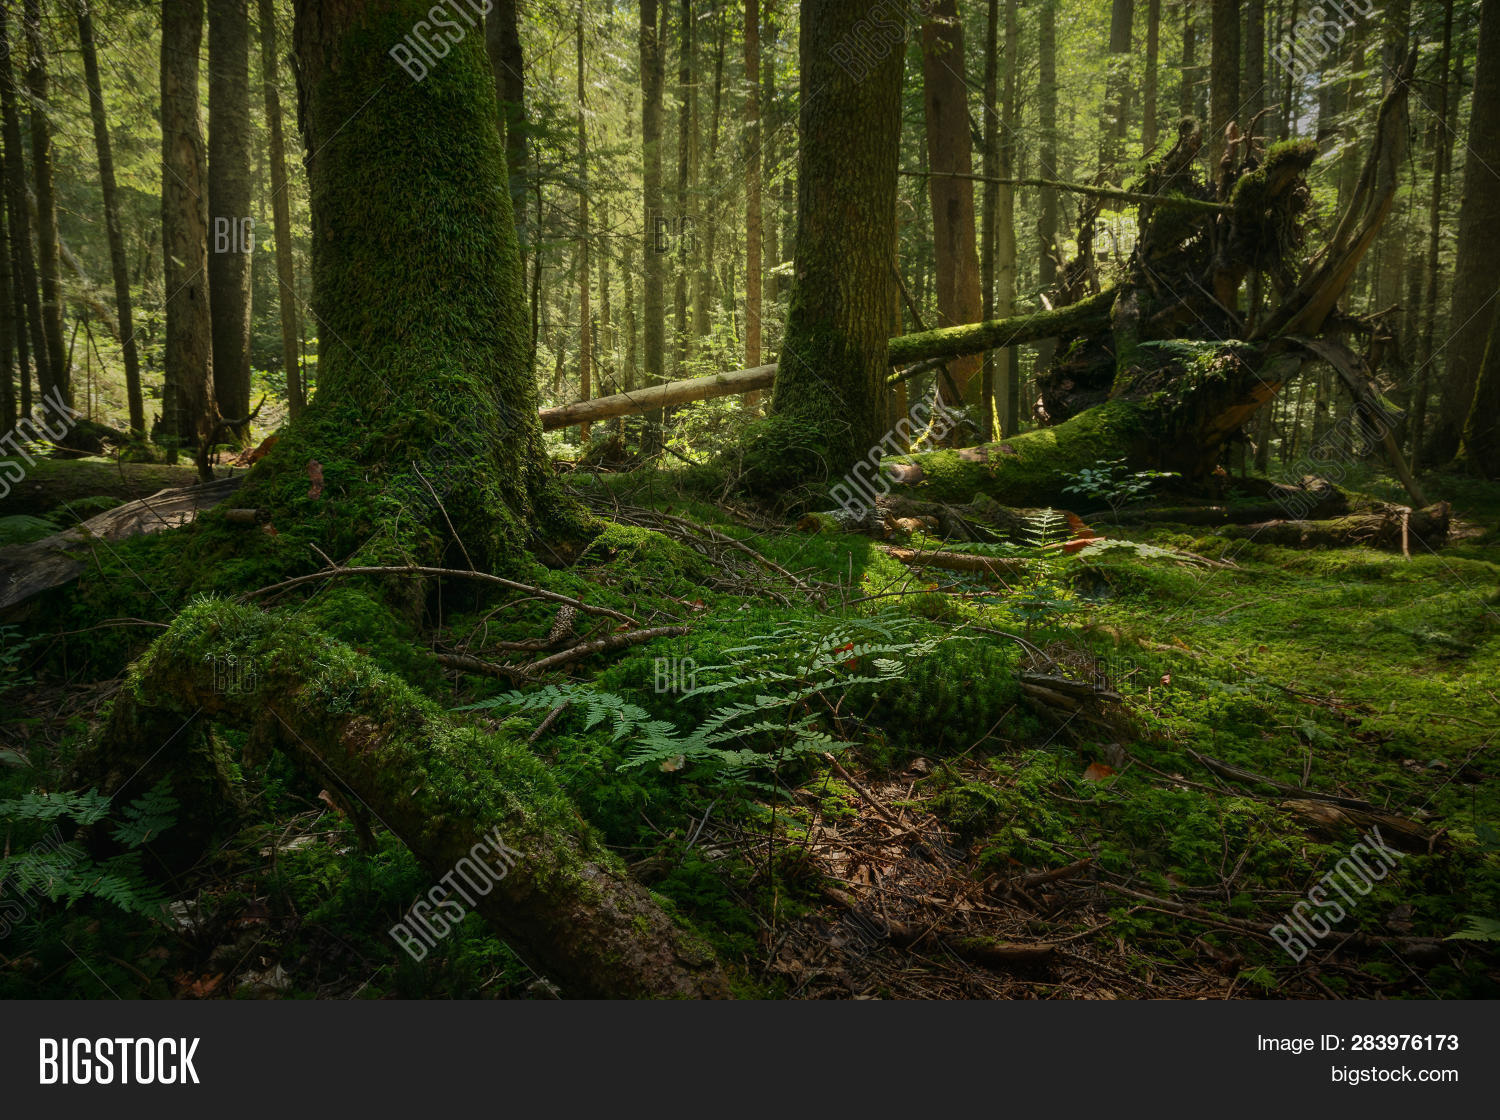 ancient,background,branches,bright,calm,color,countryside,dark,dry,ecosystem,environment,environmental,foliage,forest,freshness,grass,green,humid,landscape,leaf,leaves,light,lush,misty,morning,moss,mountain,mystic,natural,nature,outdoor,peaceful,plants,preservation,rainforest,roots,rural,serbia,sunlight,tara,tranquil,travel,tree,untouched,vivid,walk,walkway,weather,wild,woodland